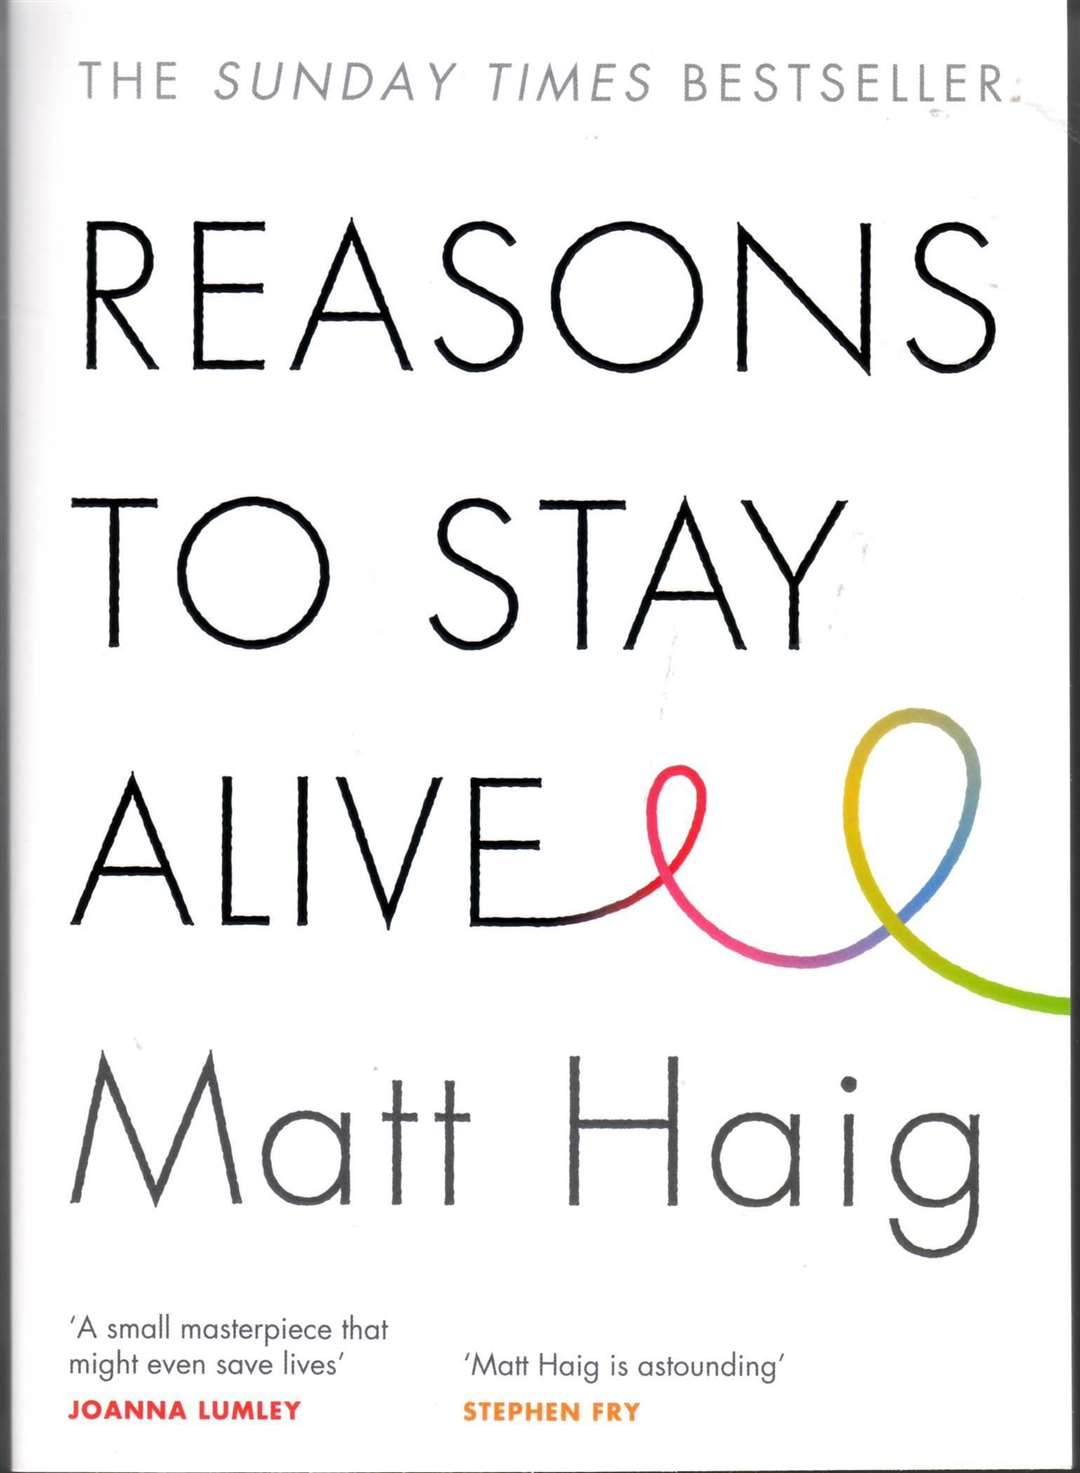 Reasons to Stay Alive by Matt Haig.